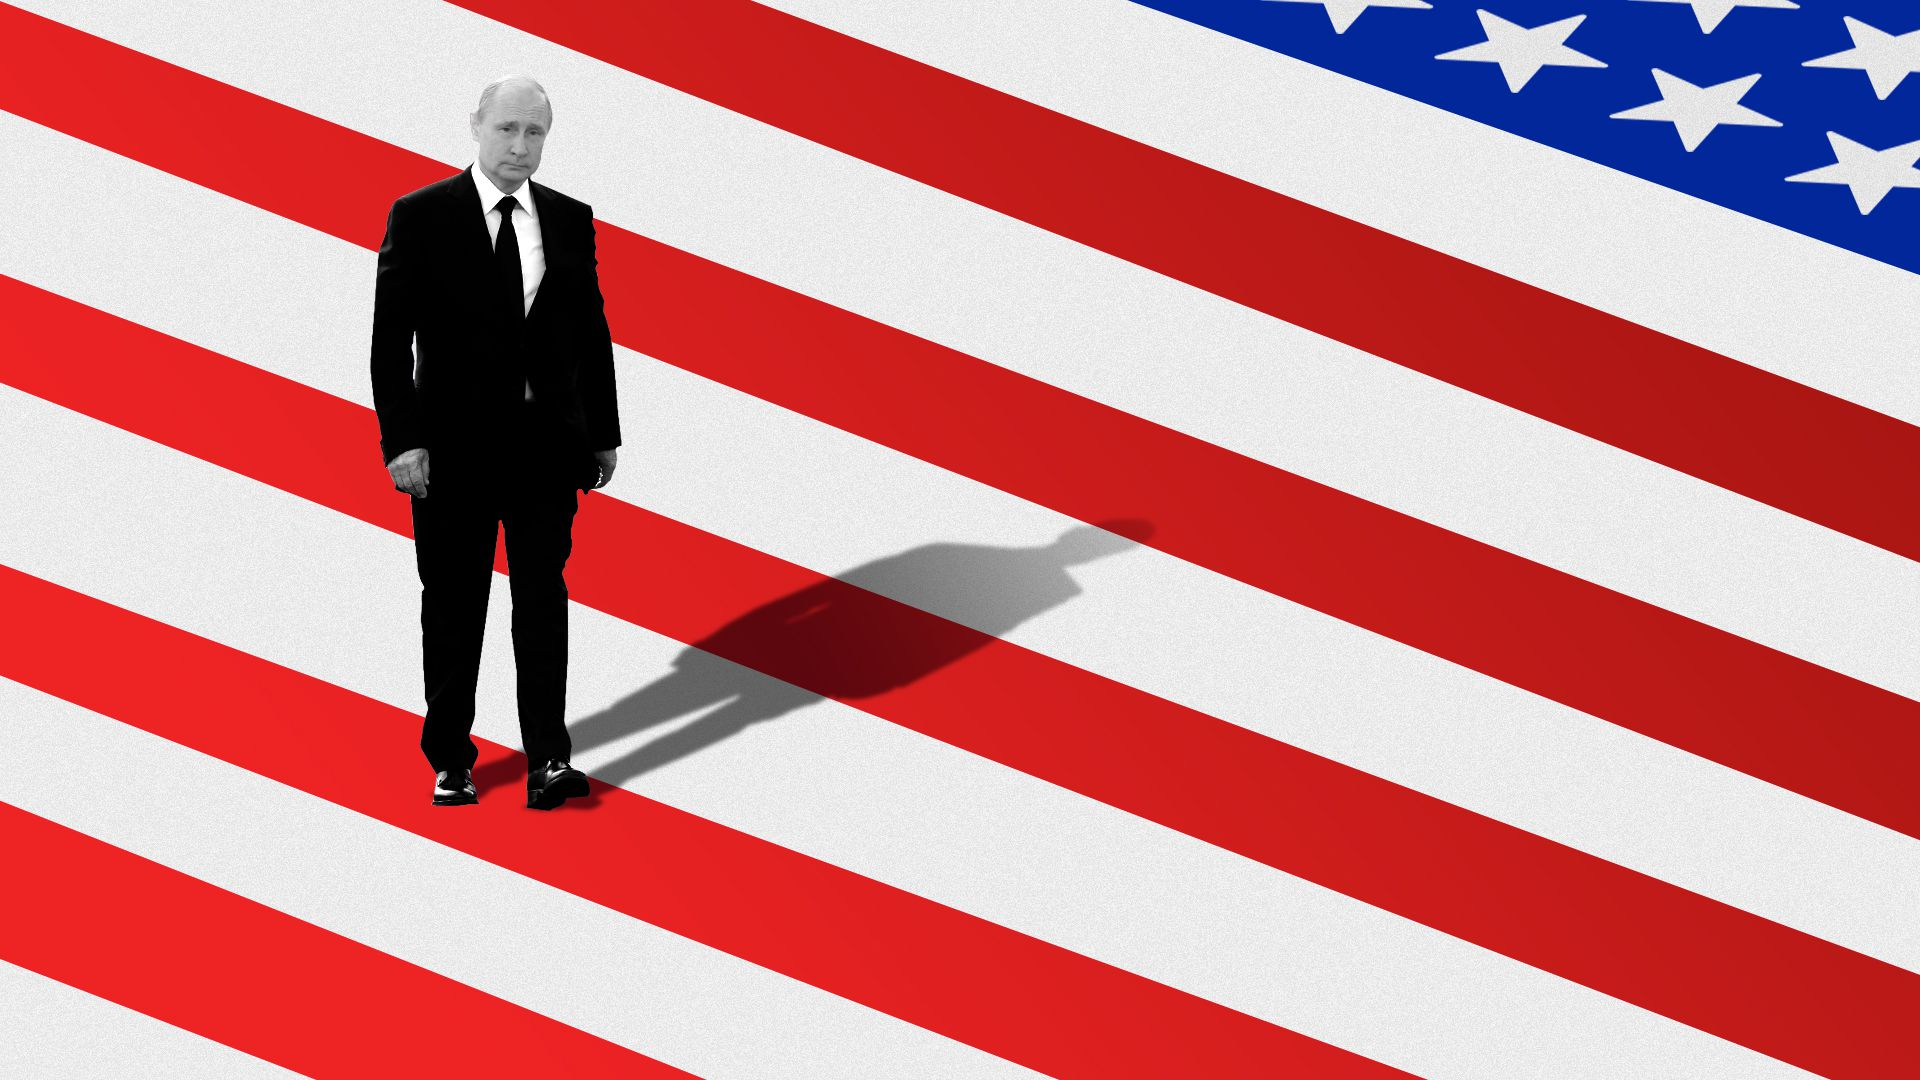 The threat of Russian interference in 2020